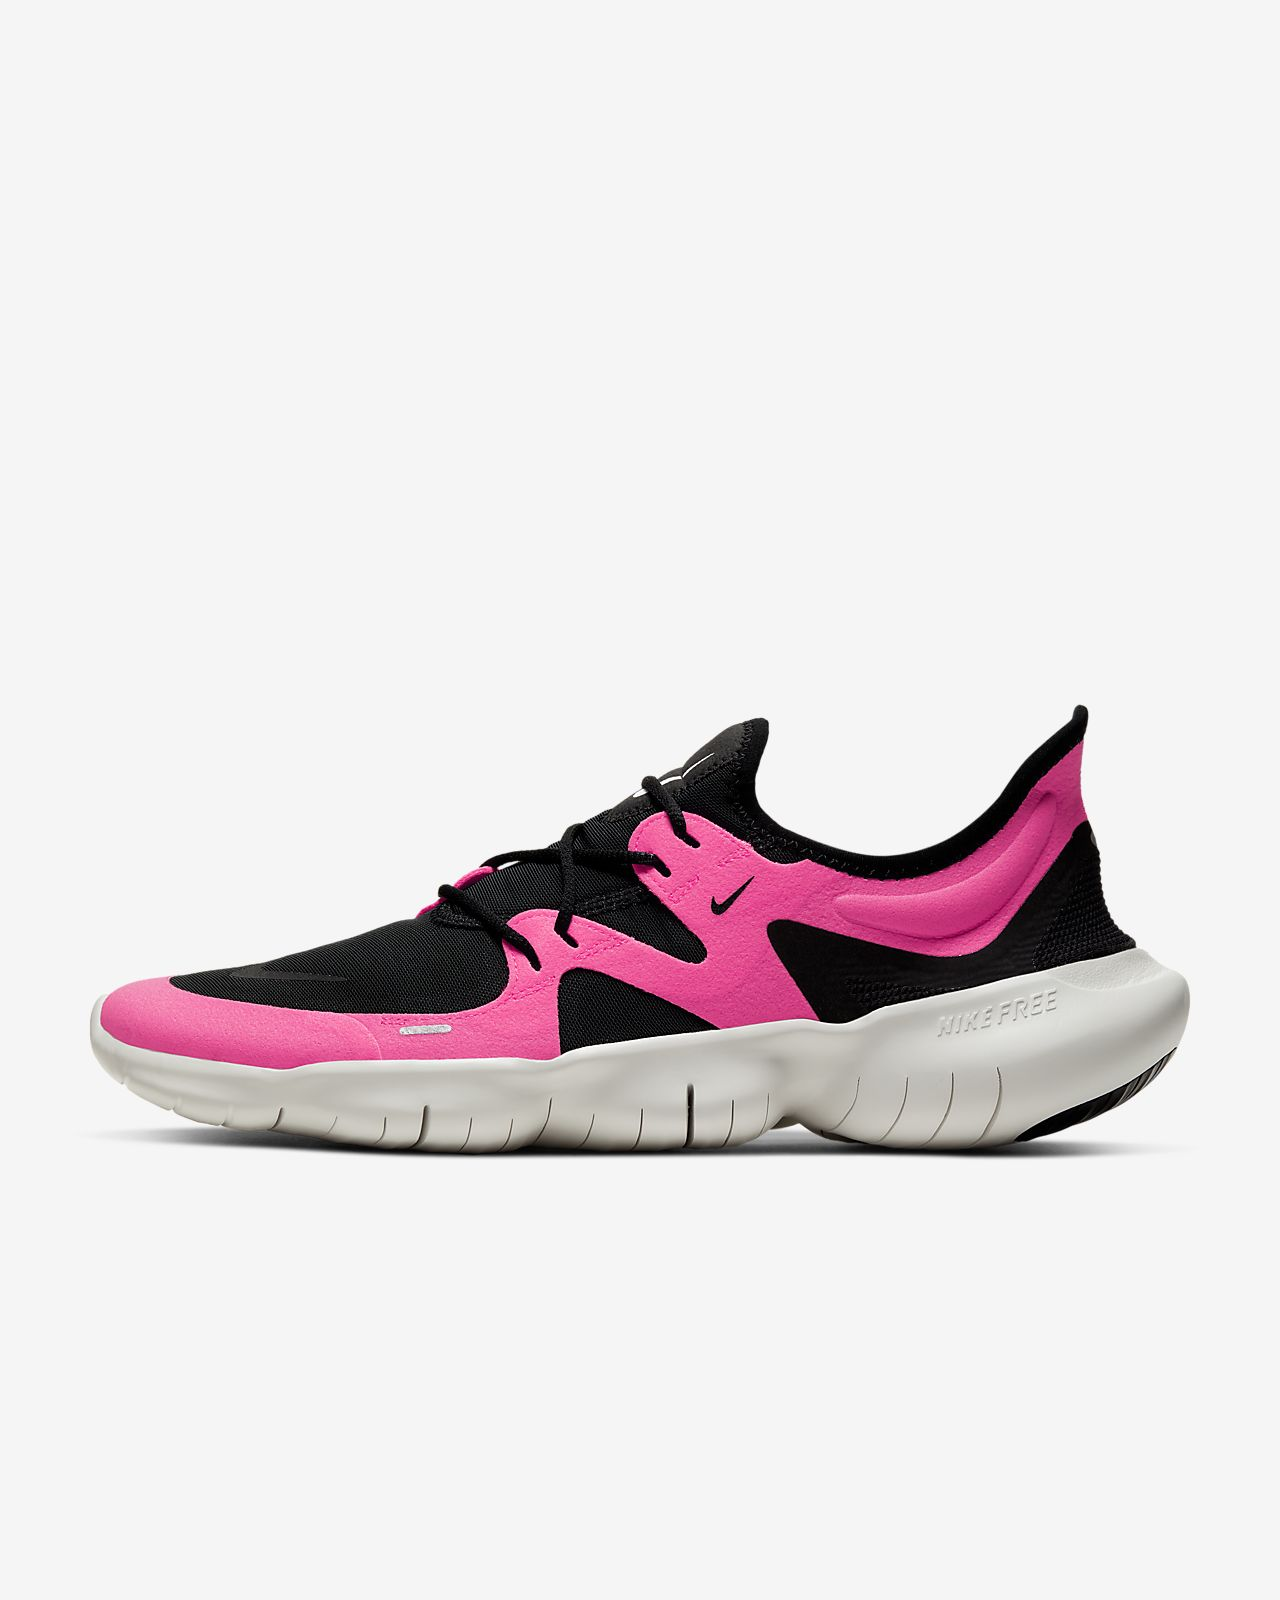 pink and black nike frees